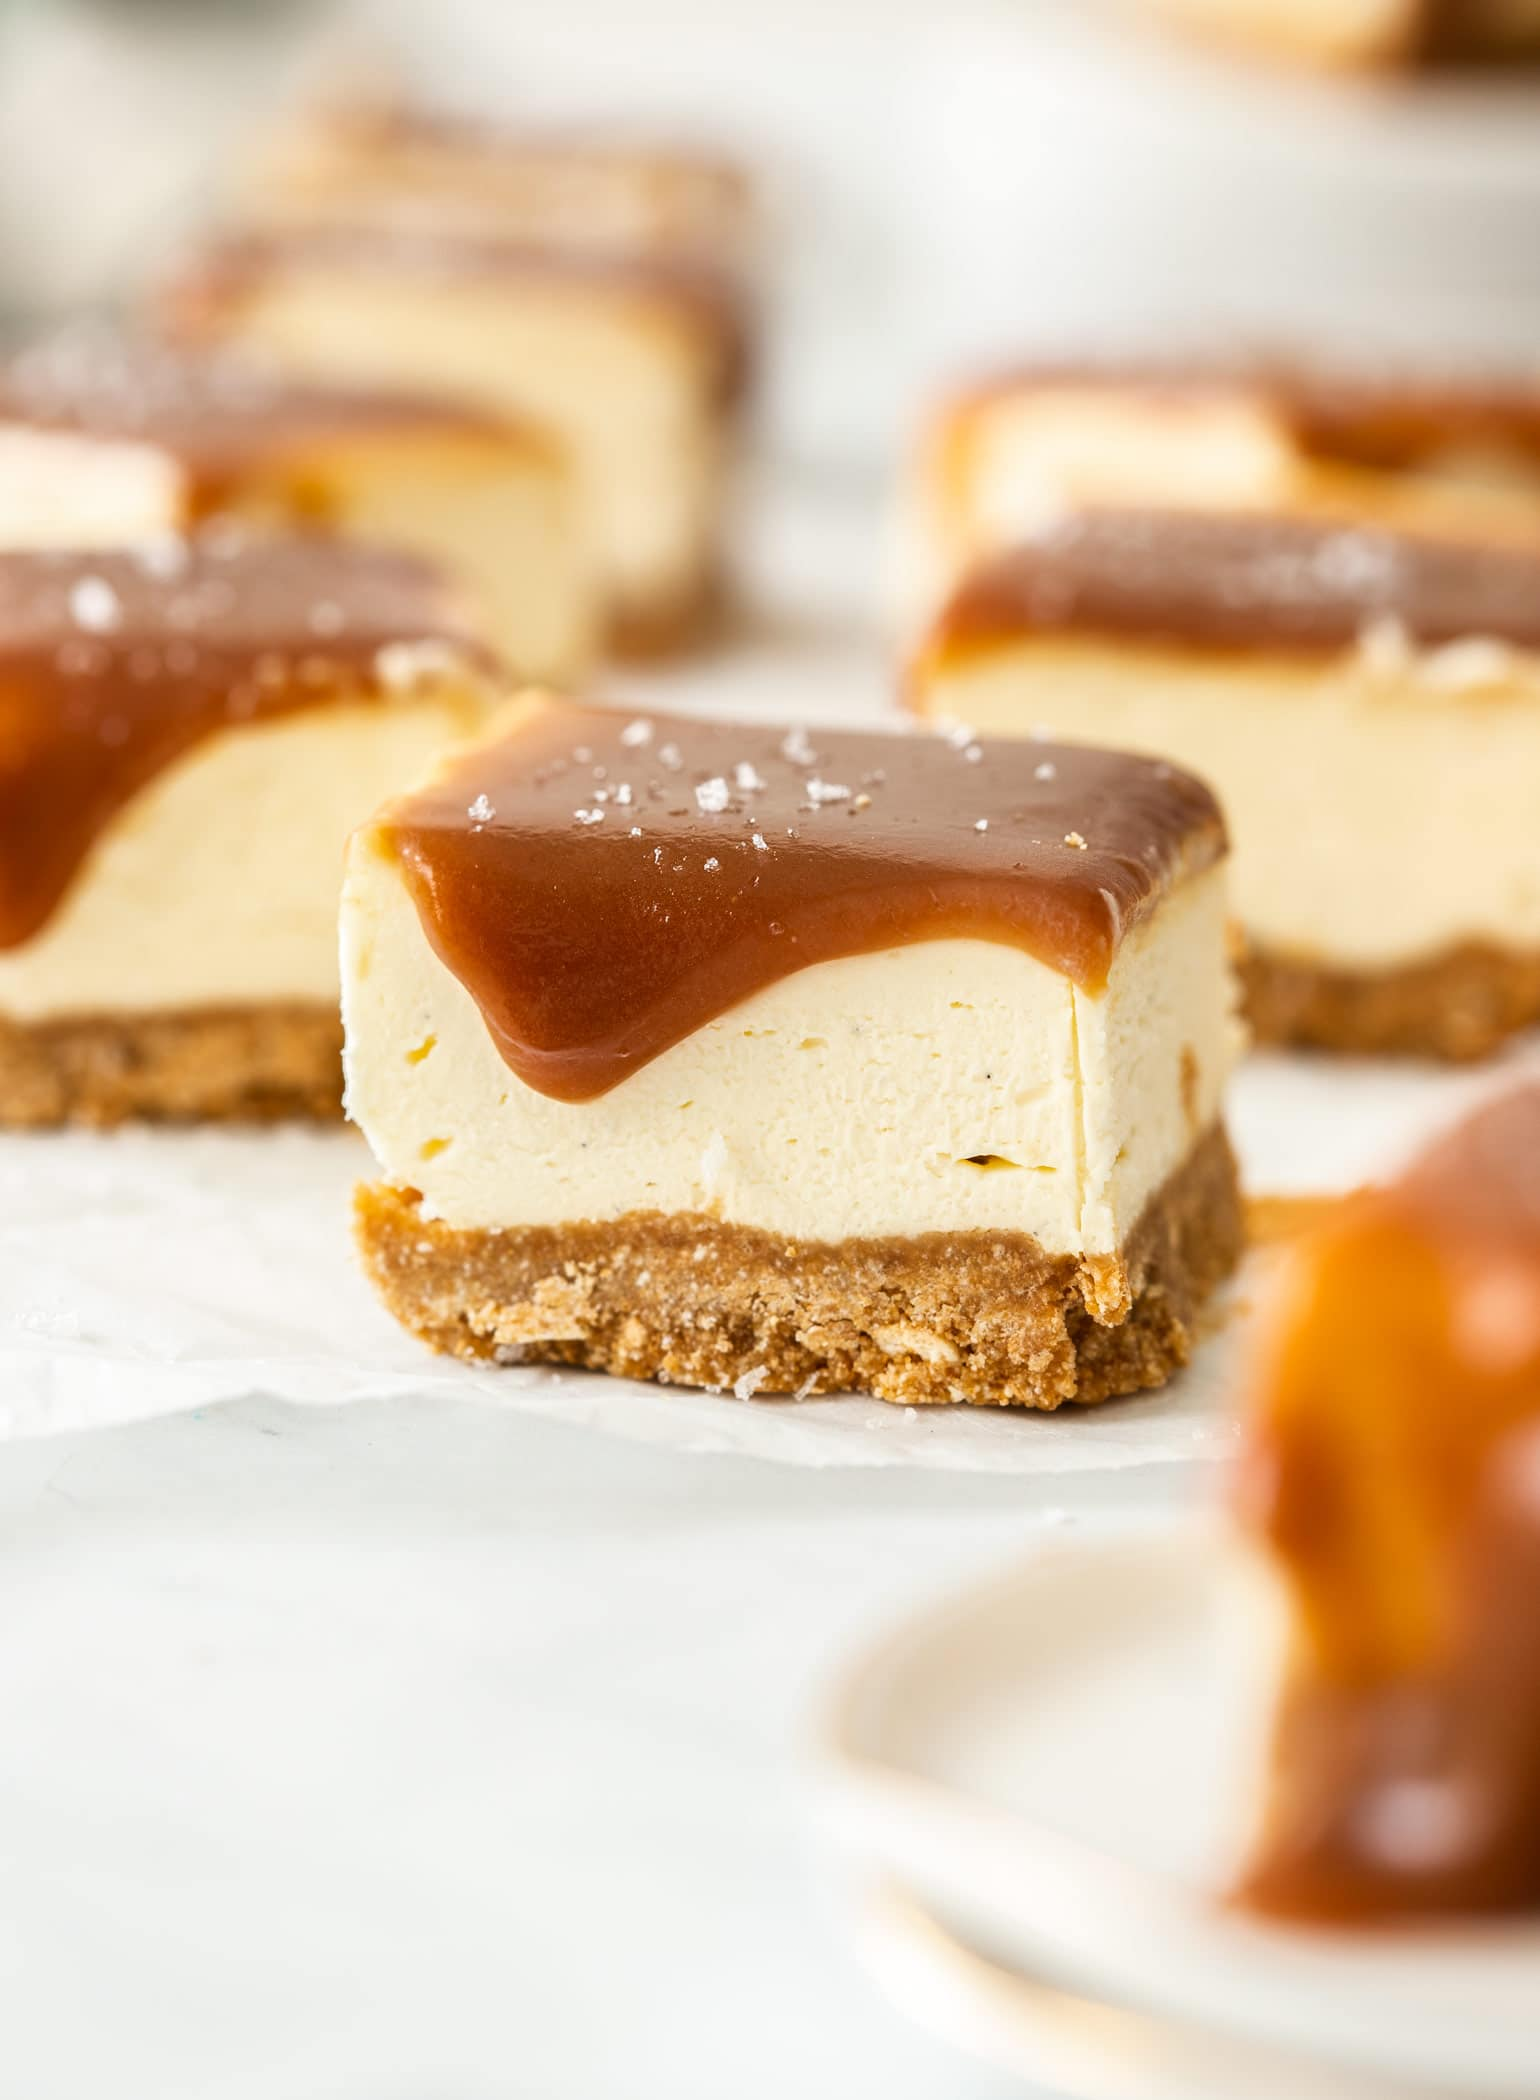 Closeup of a caramel topped cheesecake bar on a piece of white baking paper